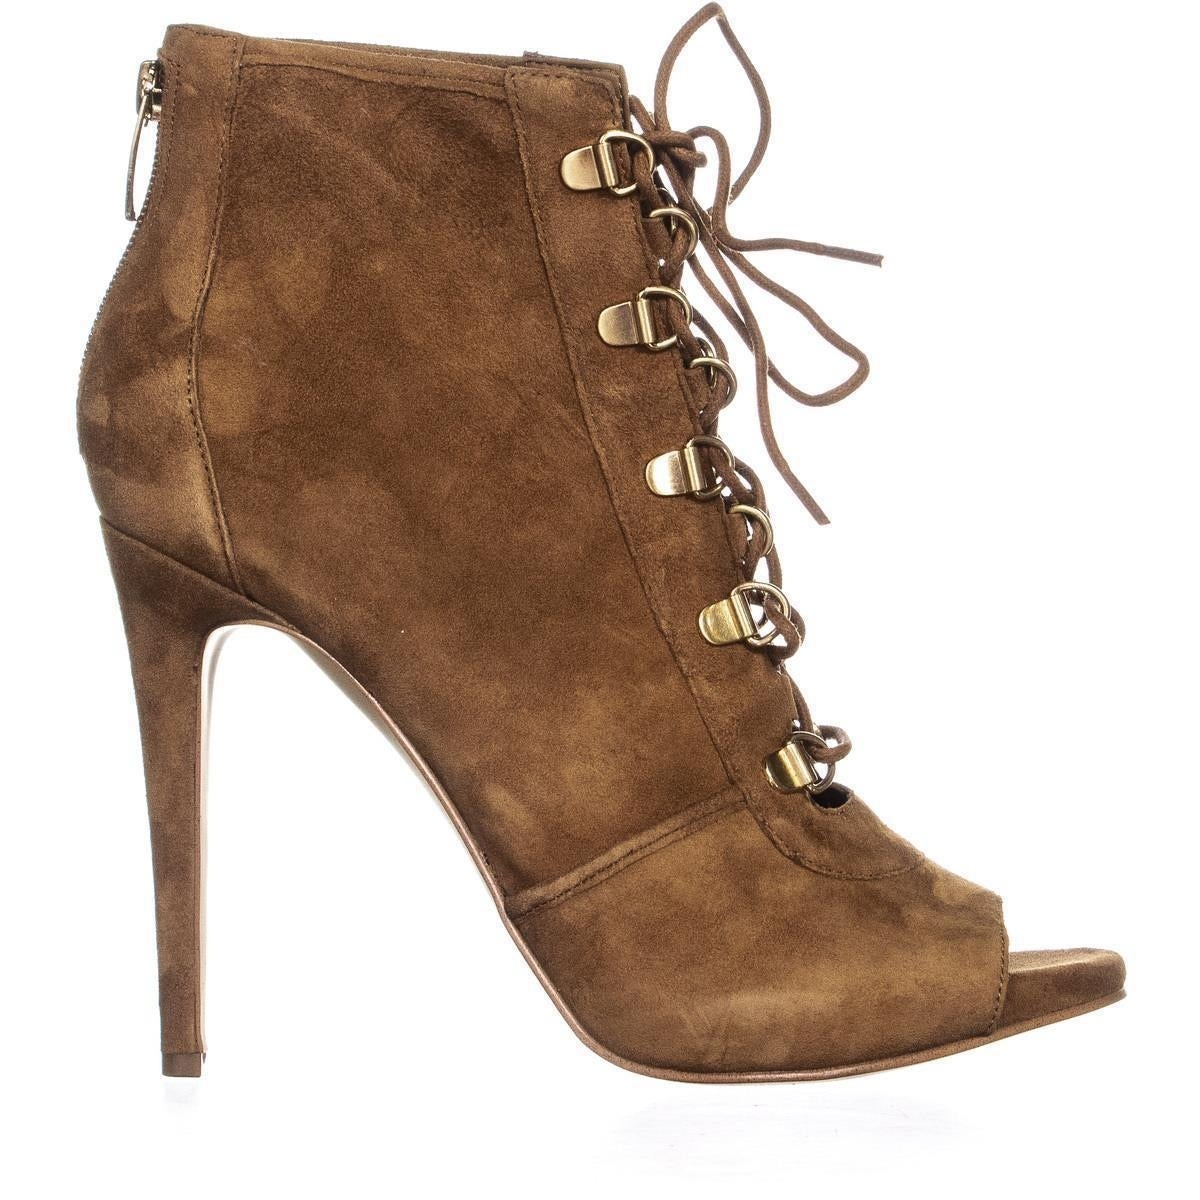 Ankle Boots, Medium Brown - Overstock